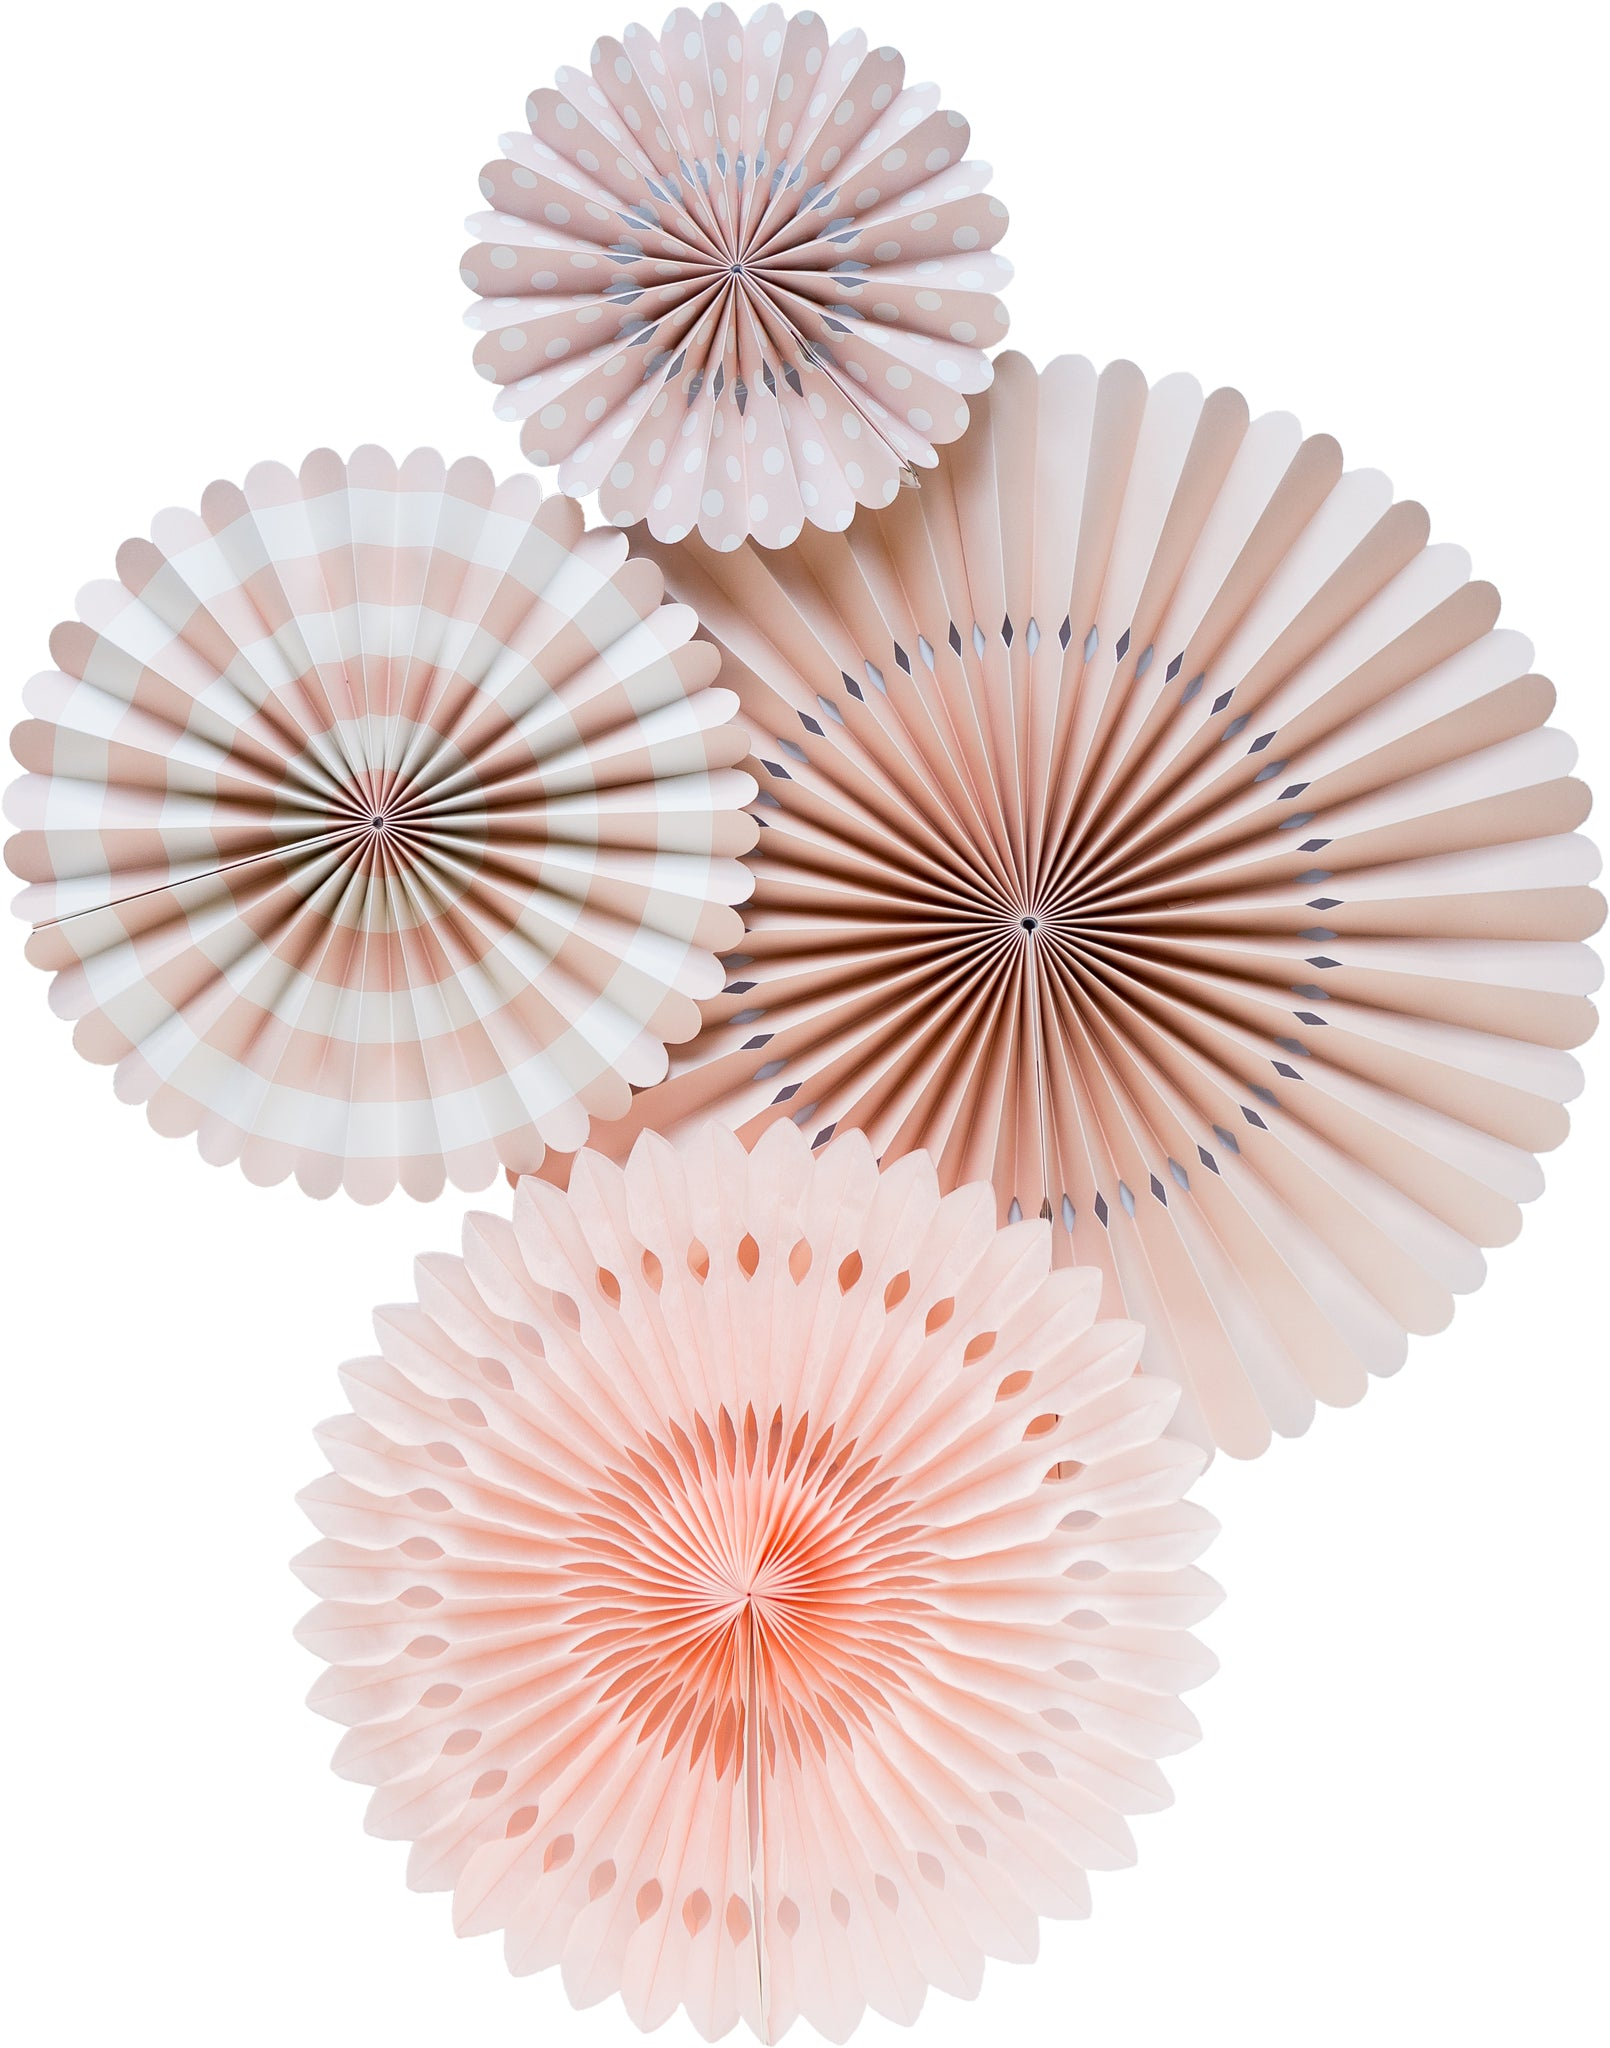 Light Pink Party Fans, Rosettes Backdrops for Birthdays, Baby Showers and Bachelorette Parties